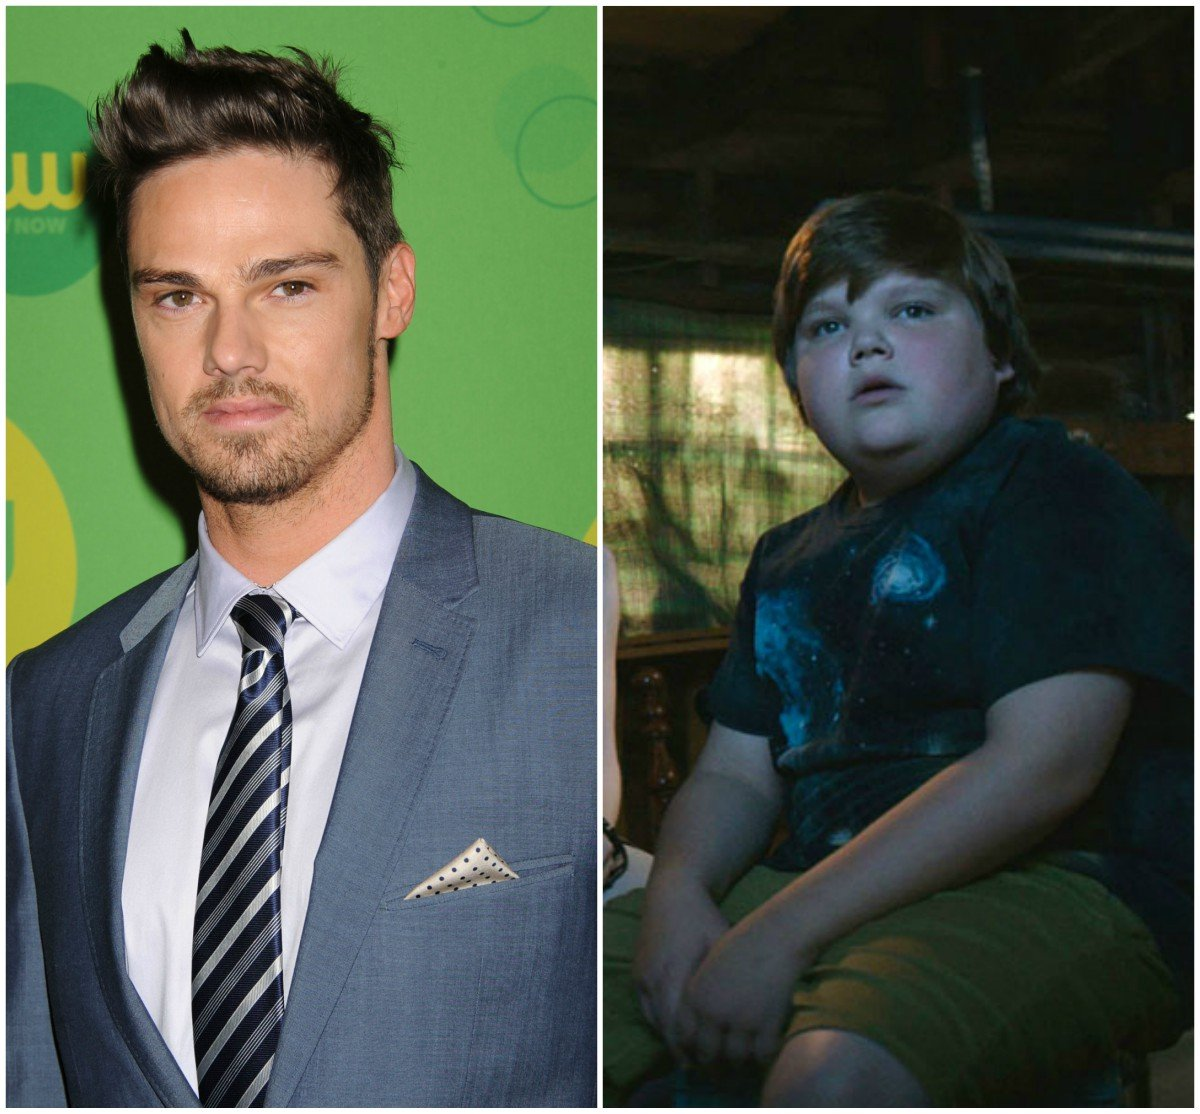 Jay Ryan as Ben Hanscom